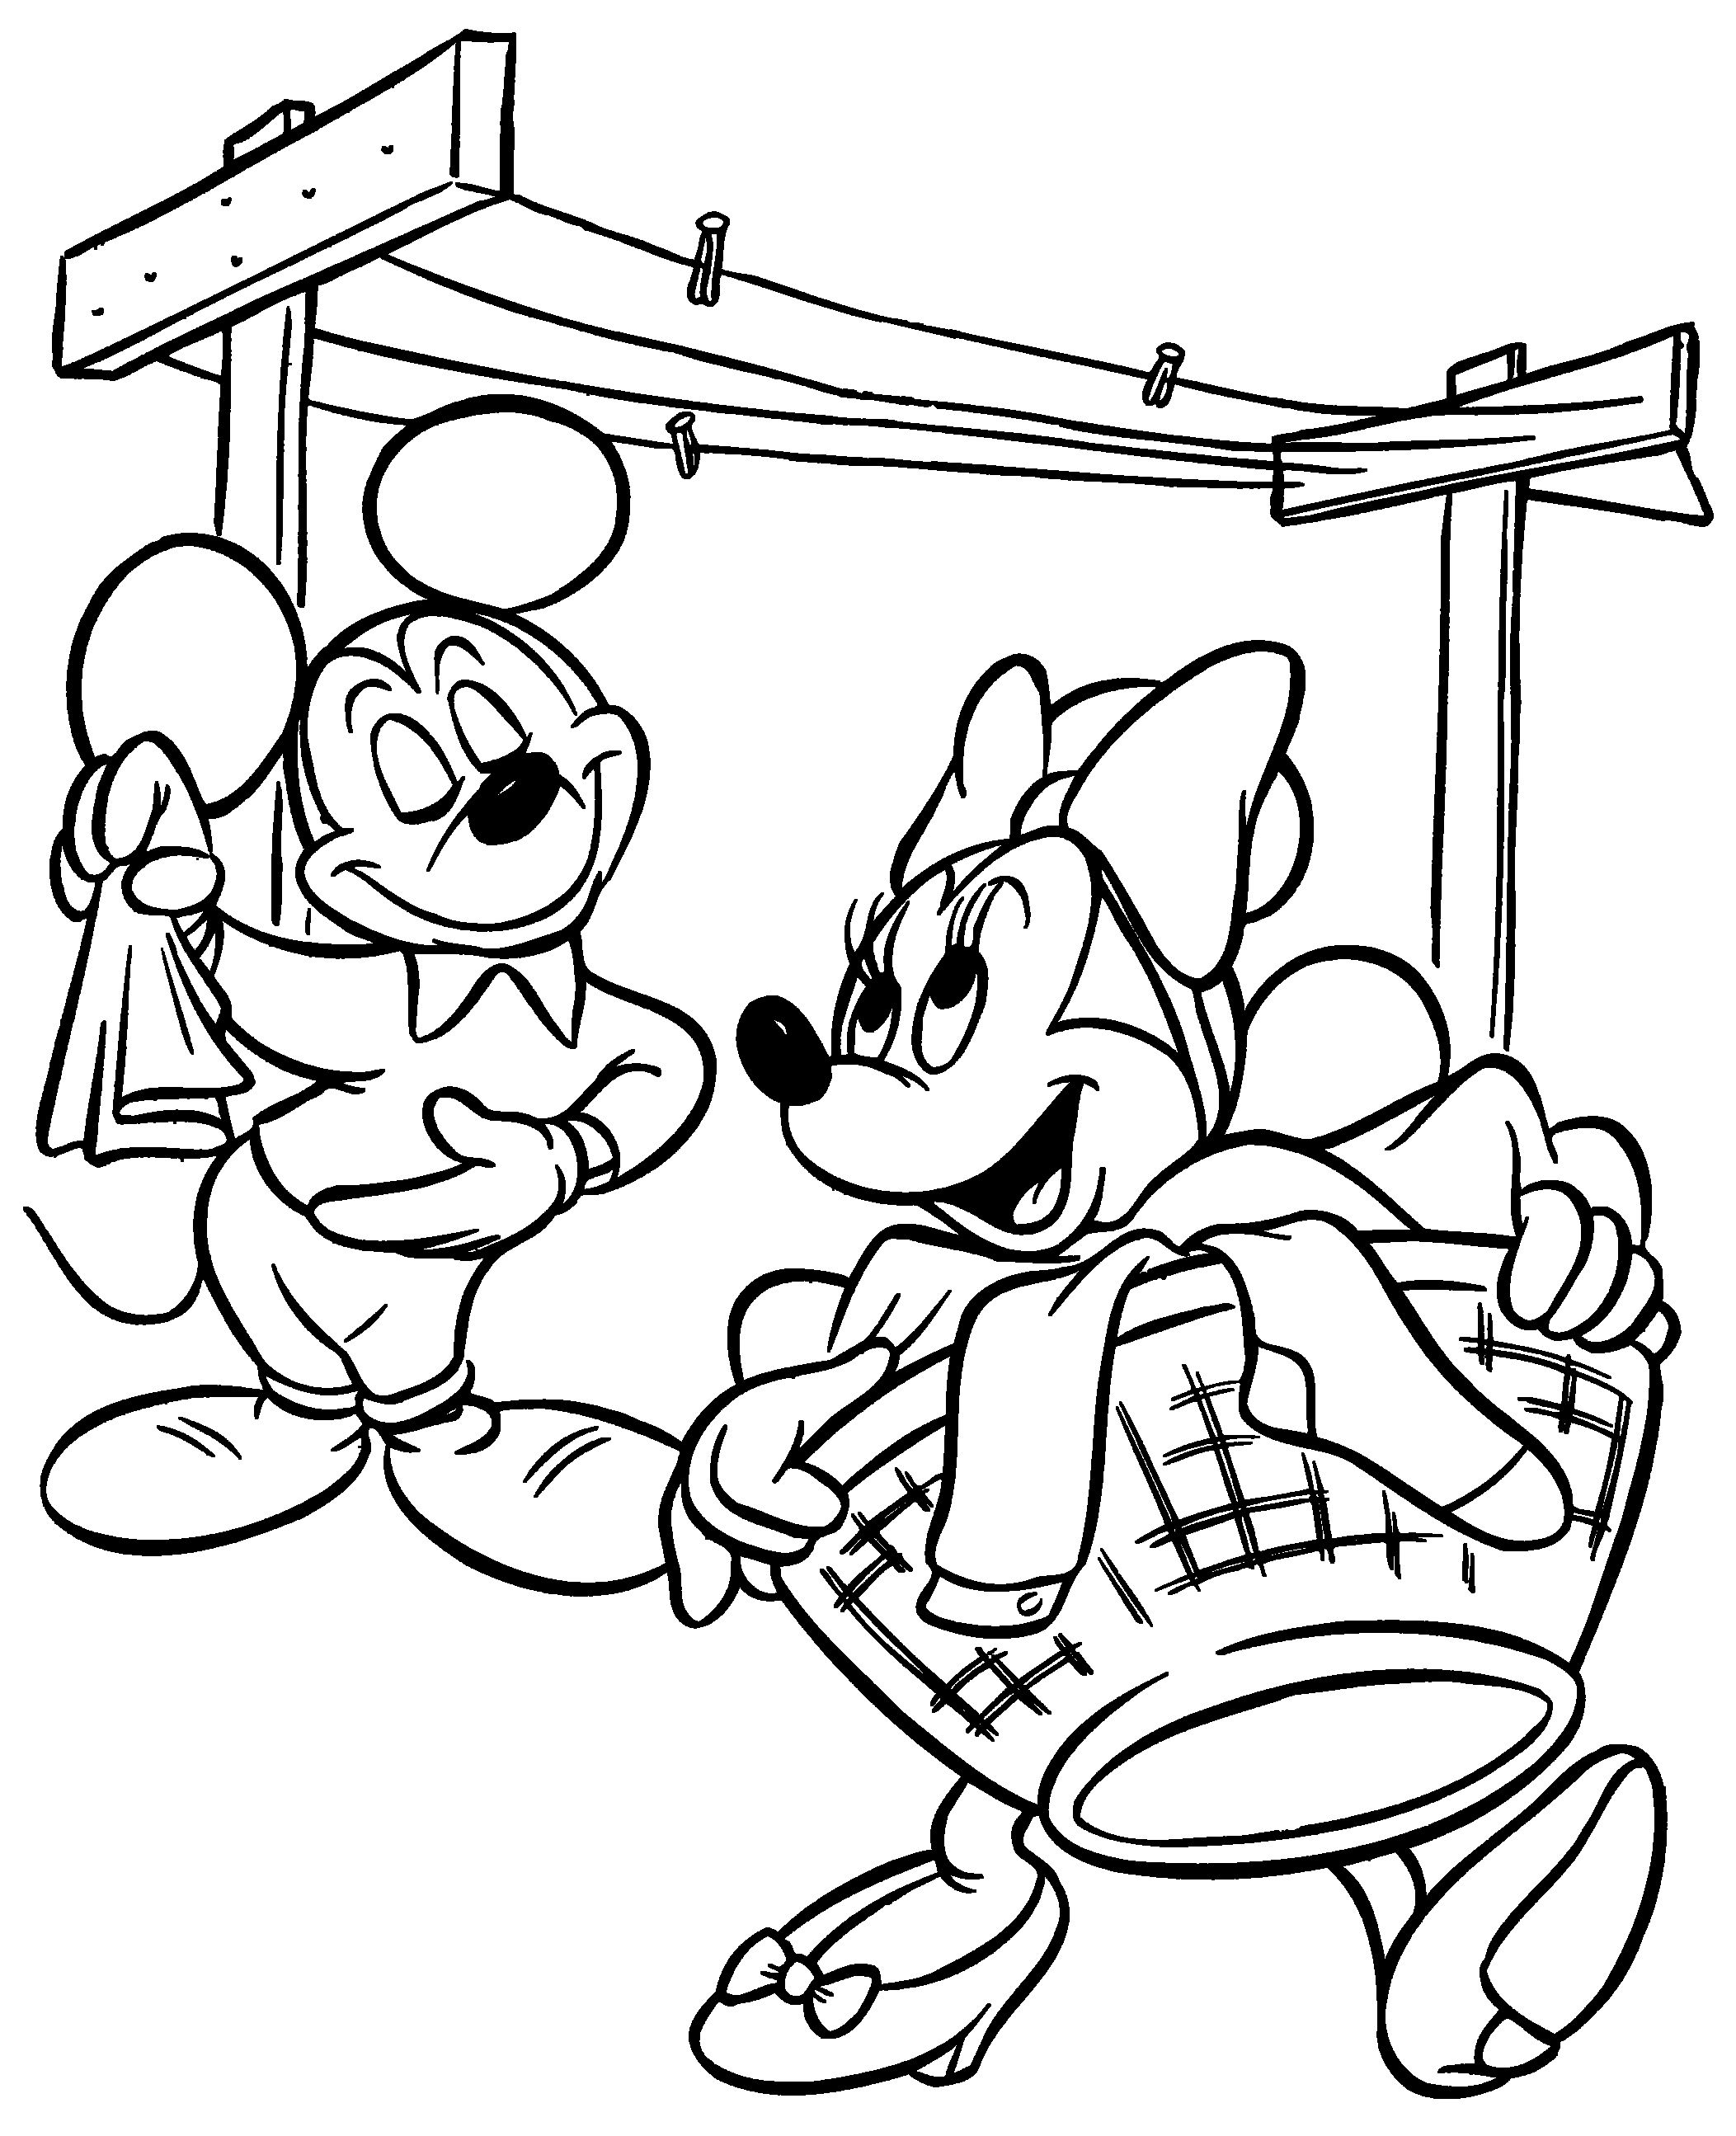 Mickey and Minnie Mouse Coloring Pages Printable | Mickey Mouse ...